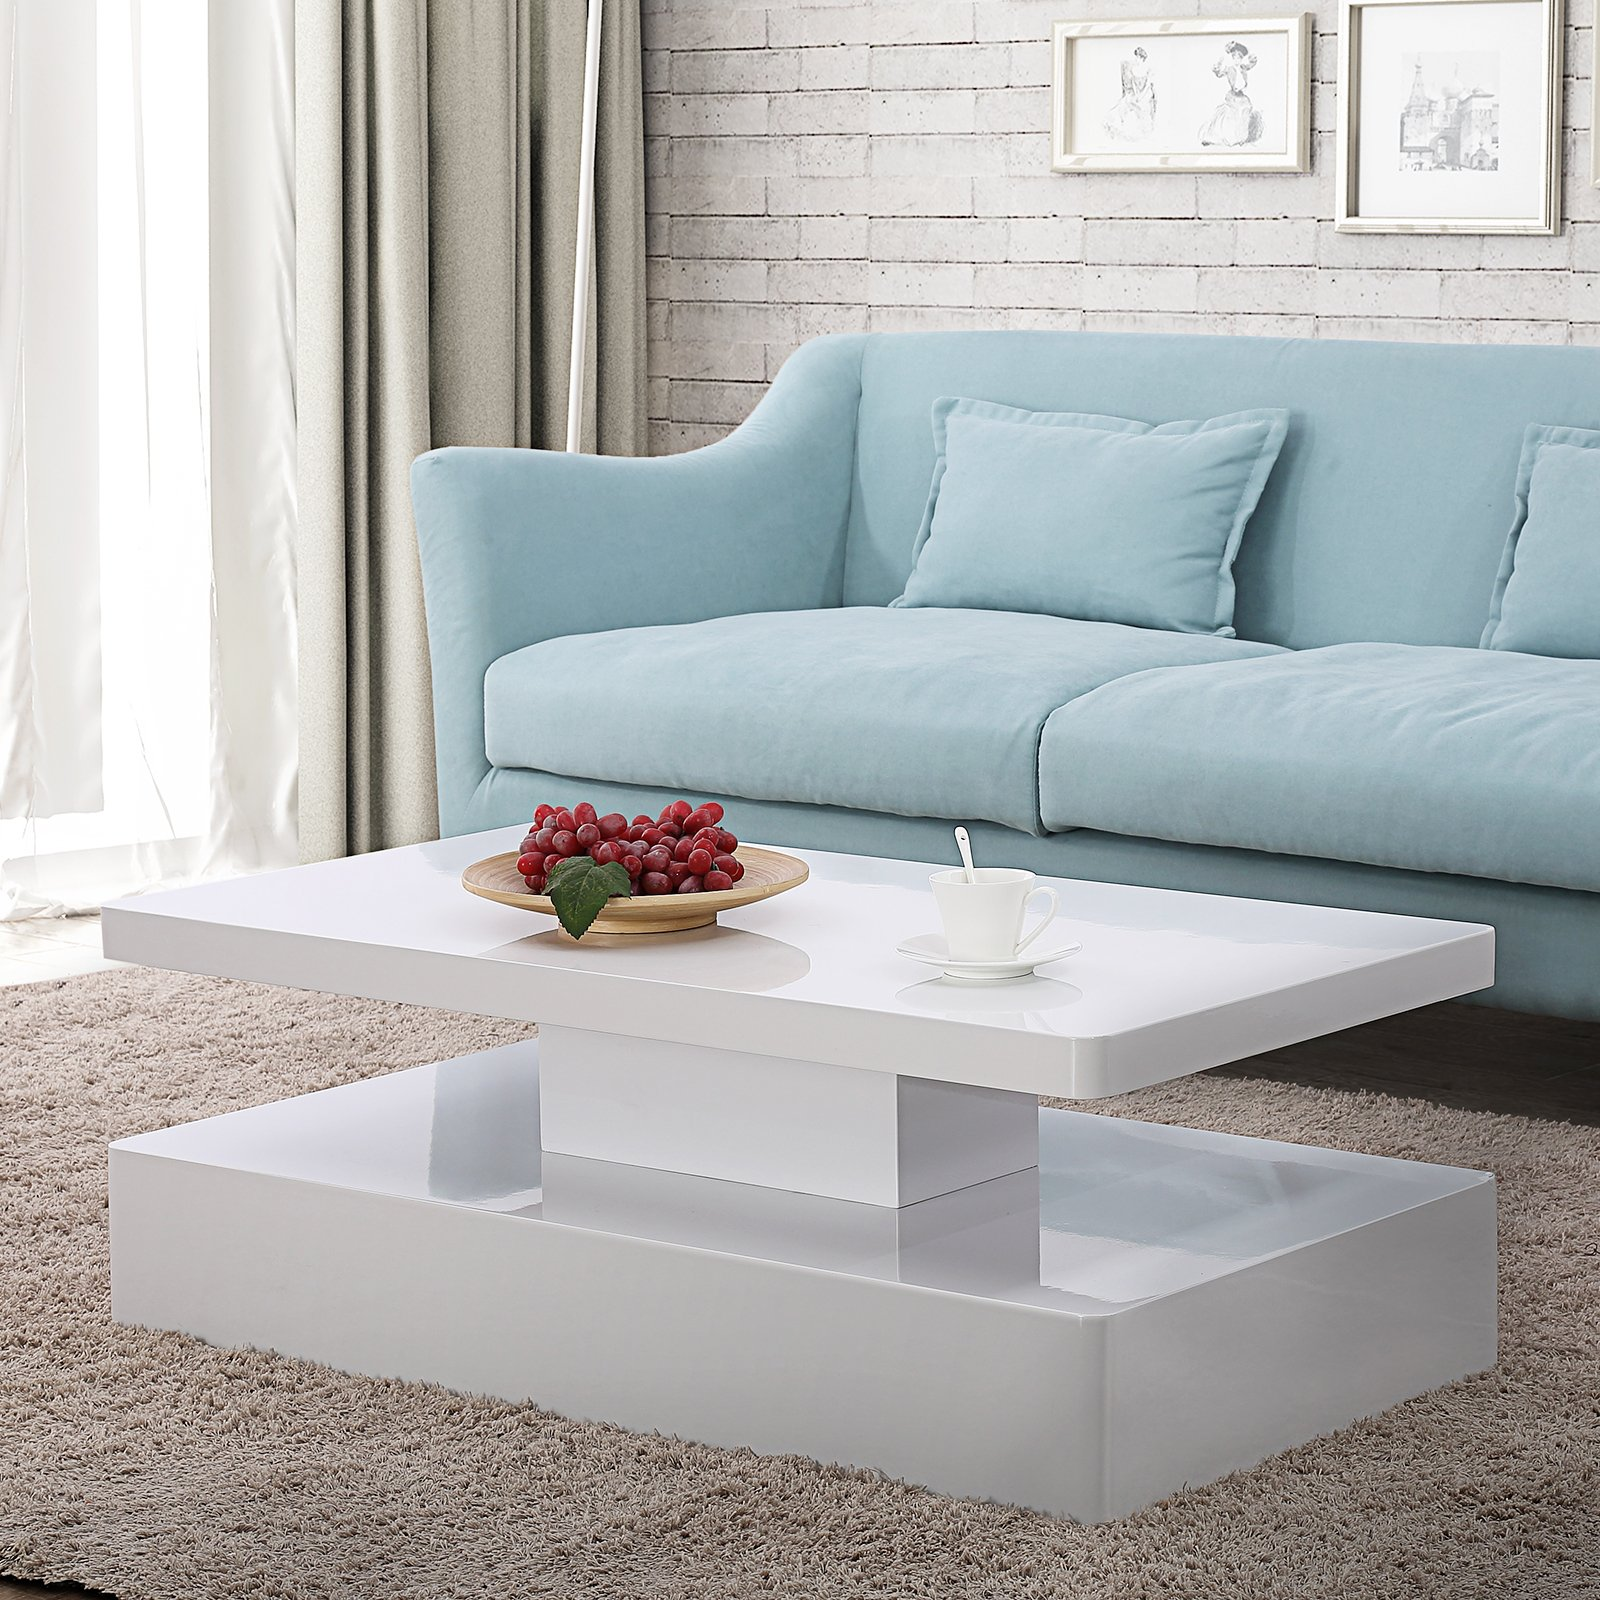 Mecor Modern Glossy White Coffee Table W/LED Lighting, Contemporary Rectangle Design Living Room Furniture by mecor